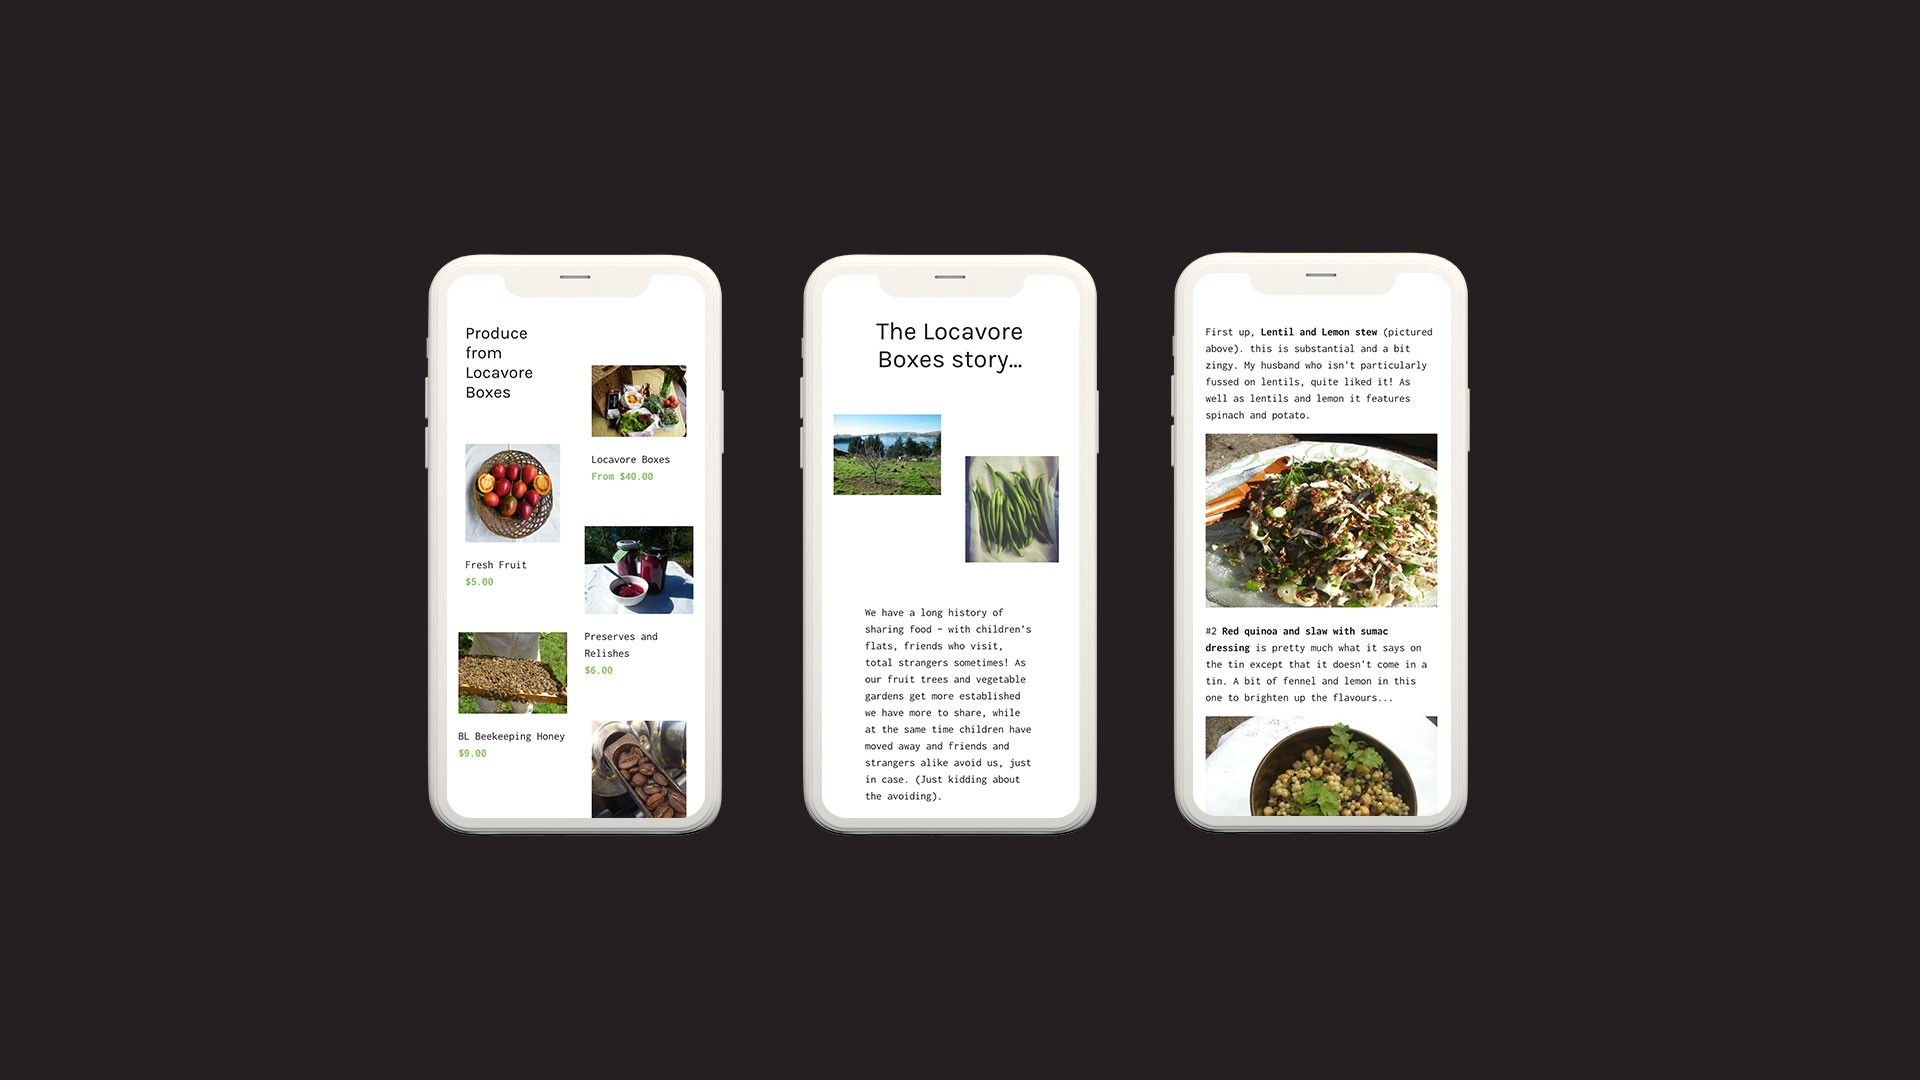 Locavore Boxes 03 Iphone mockup 3